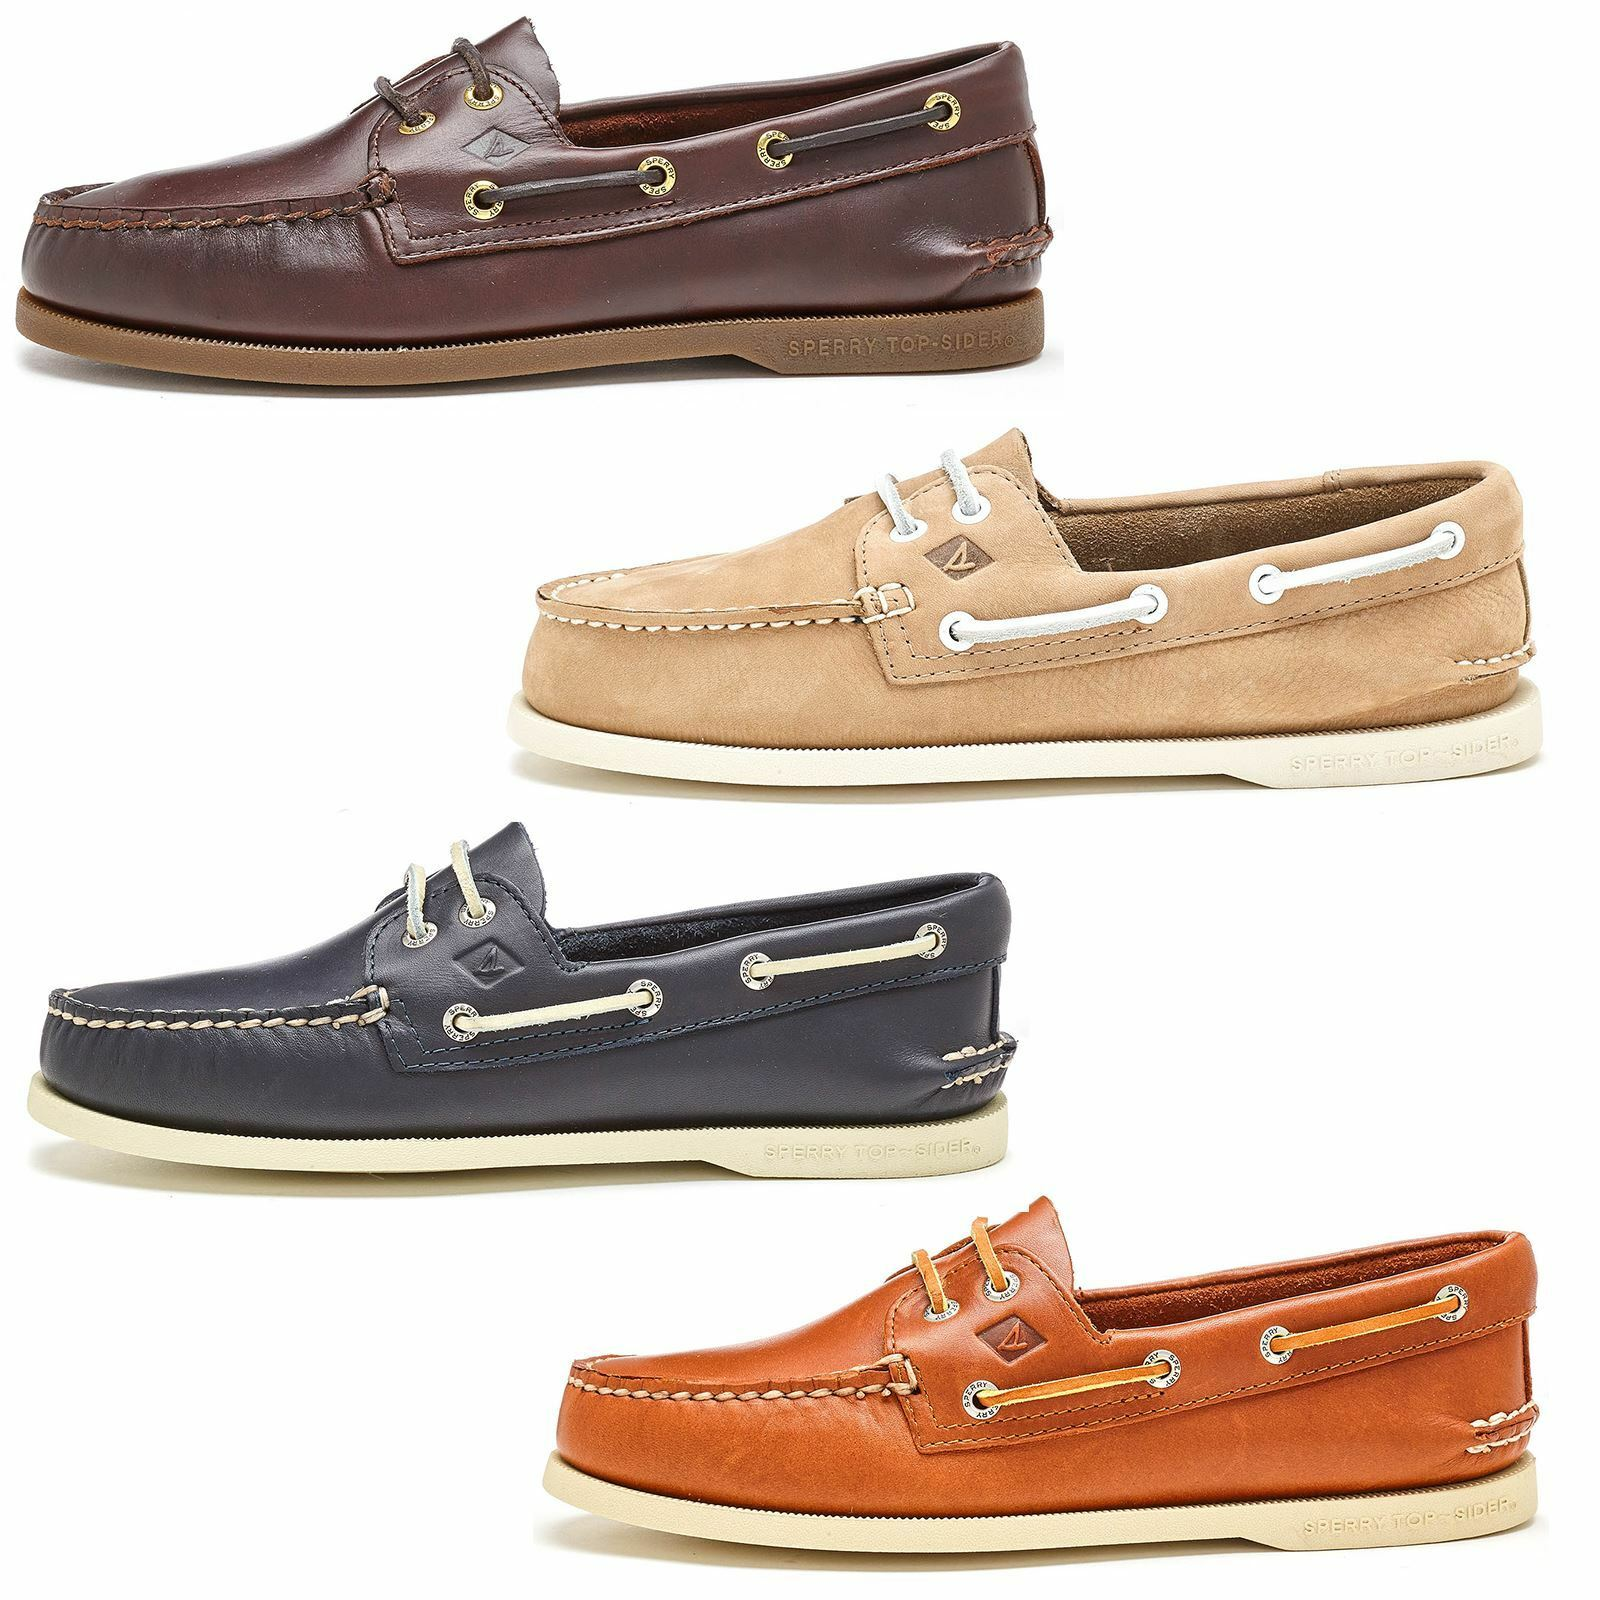 Sperry Authentic Original 2-Eye Boat Deck Shoes in Brown Taupe & Blue